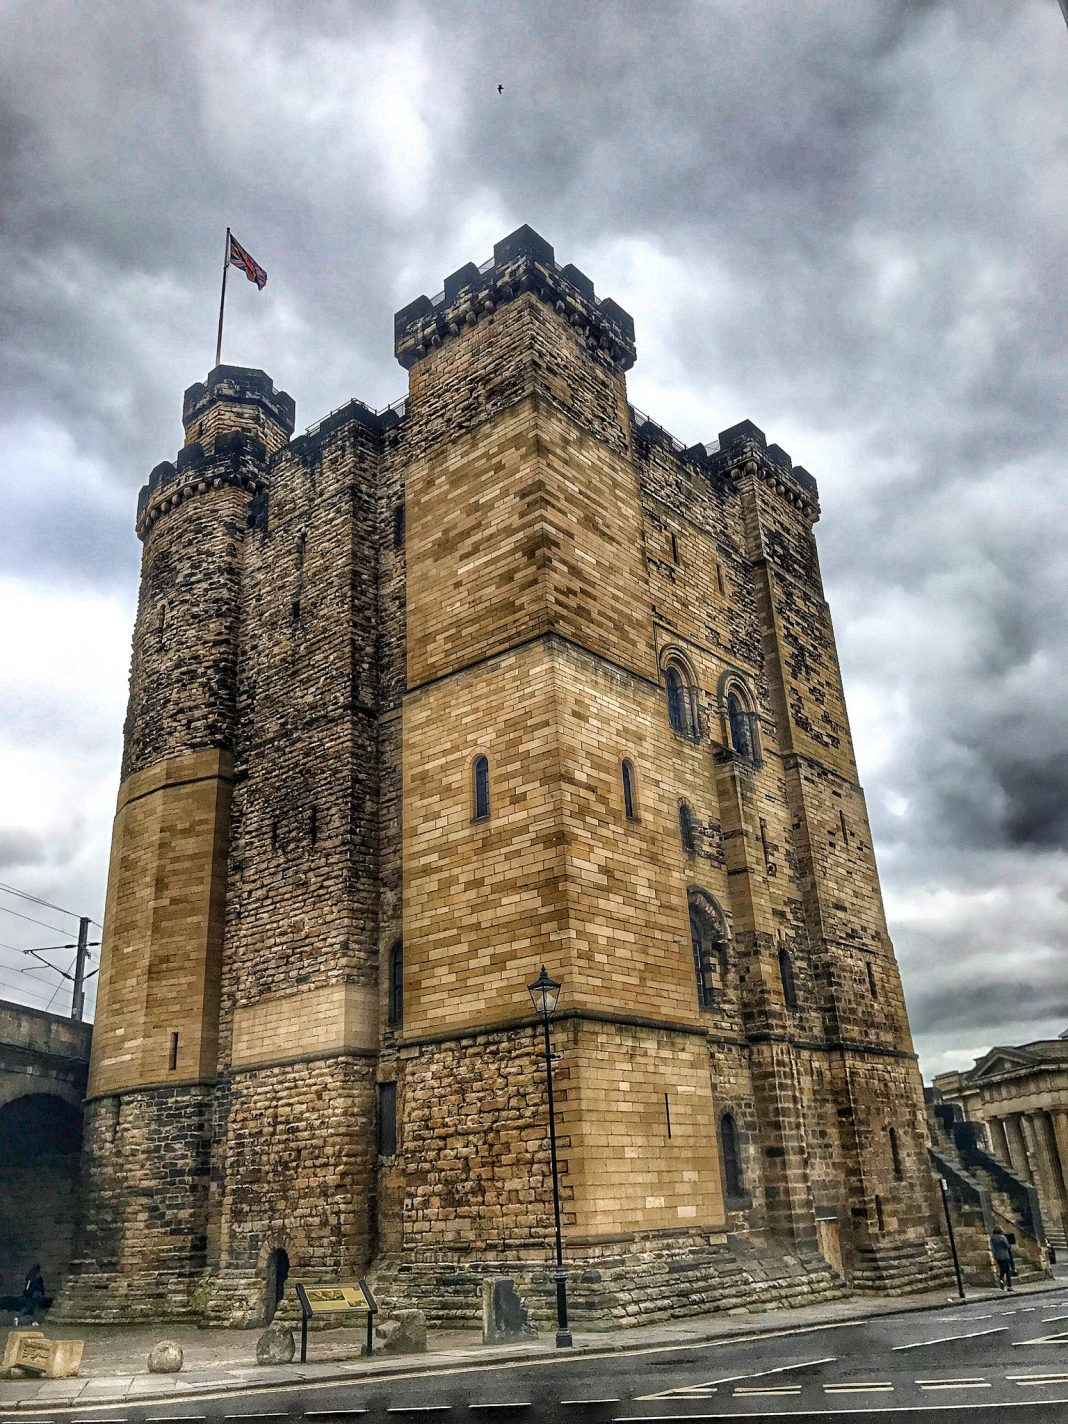 Newcastle Castle by Kieron Mathews - Flickr Creative Commons